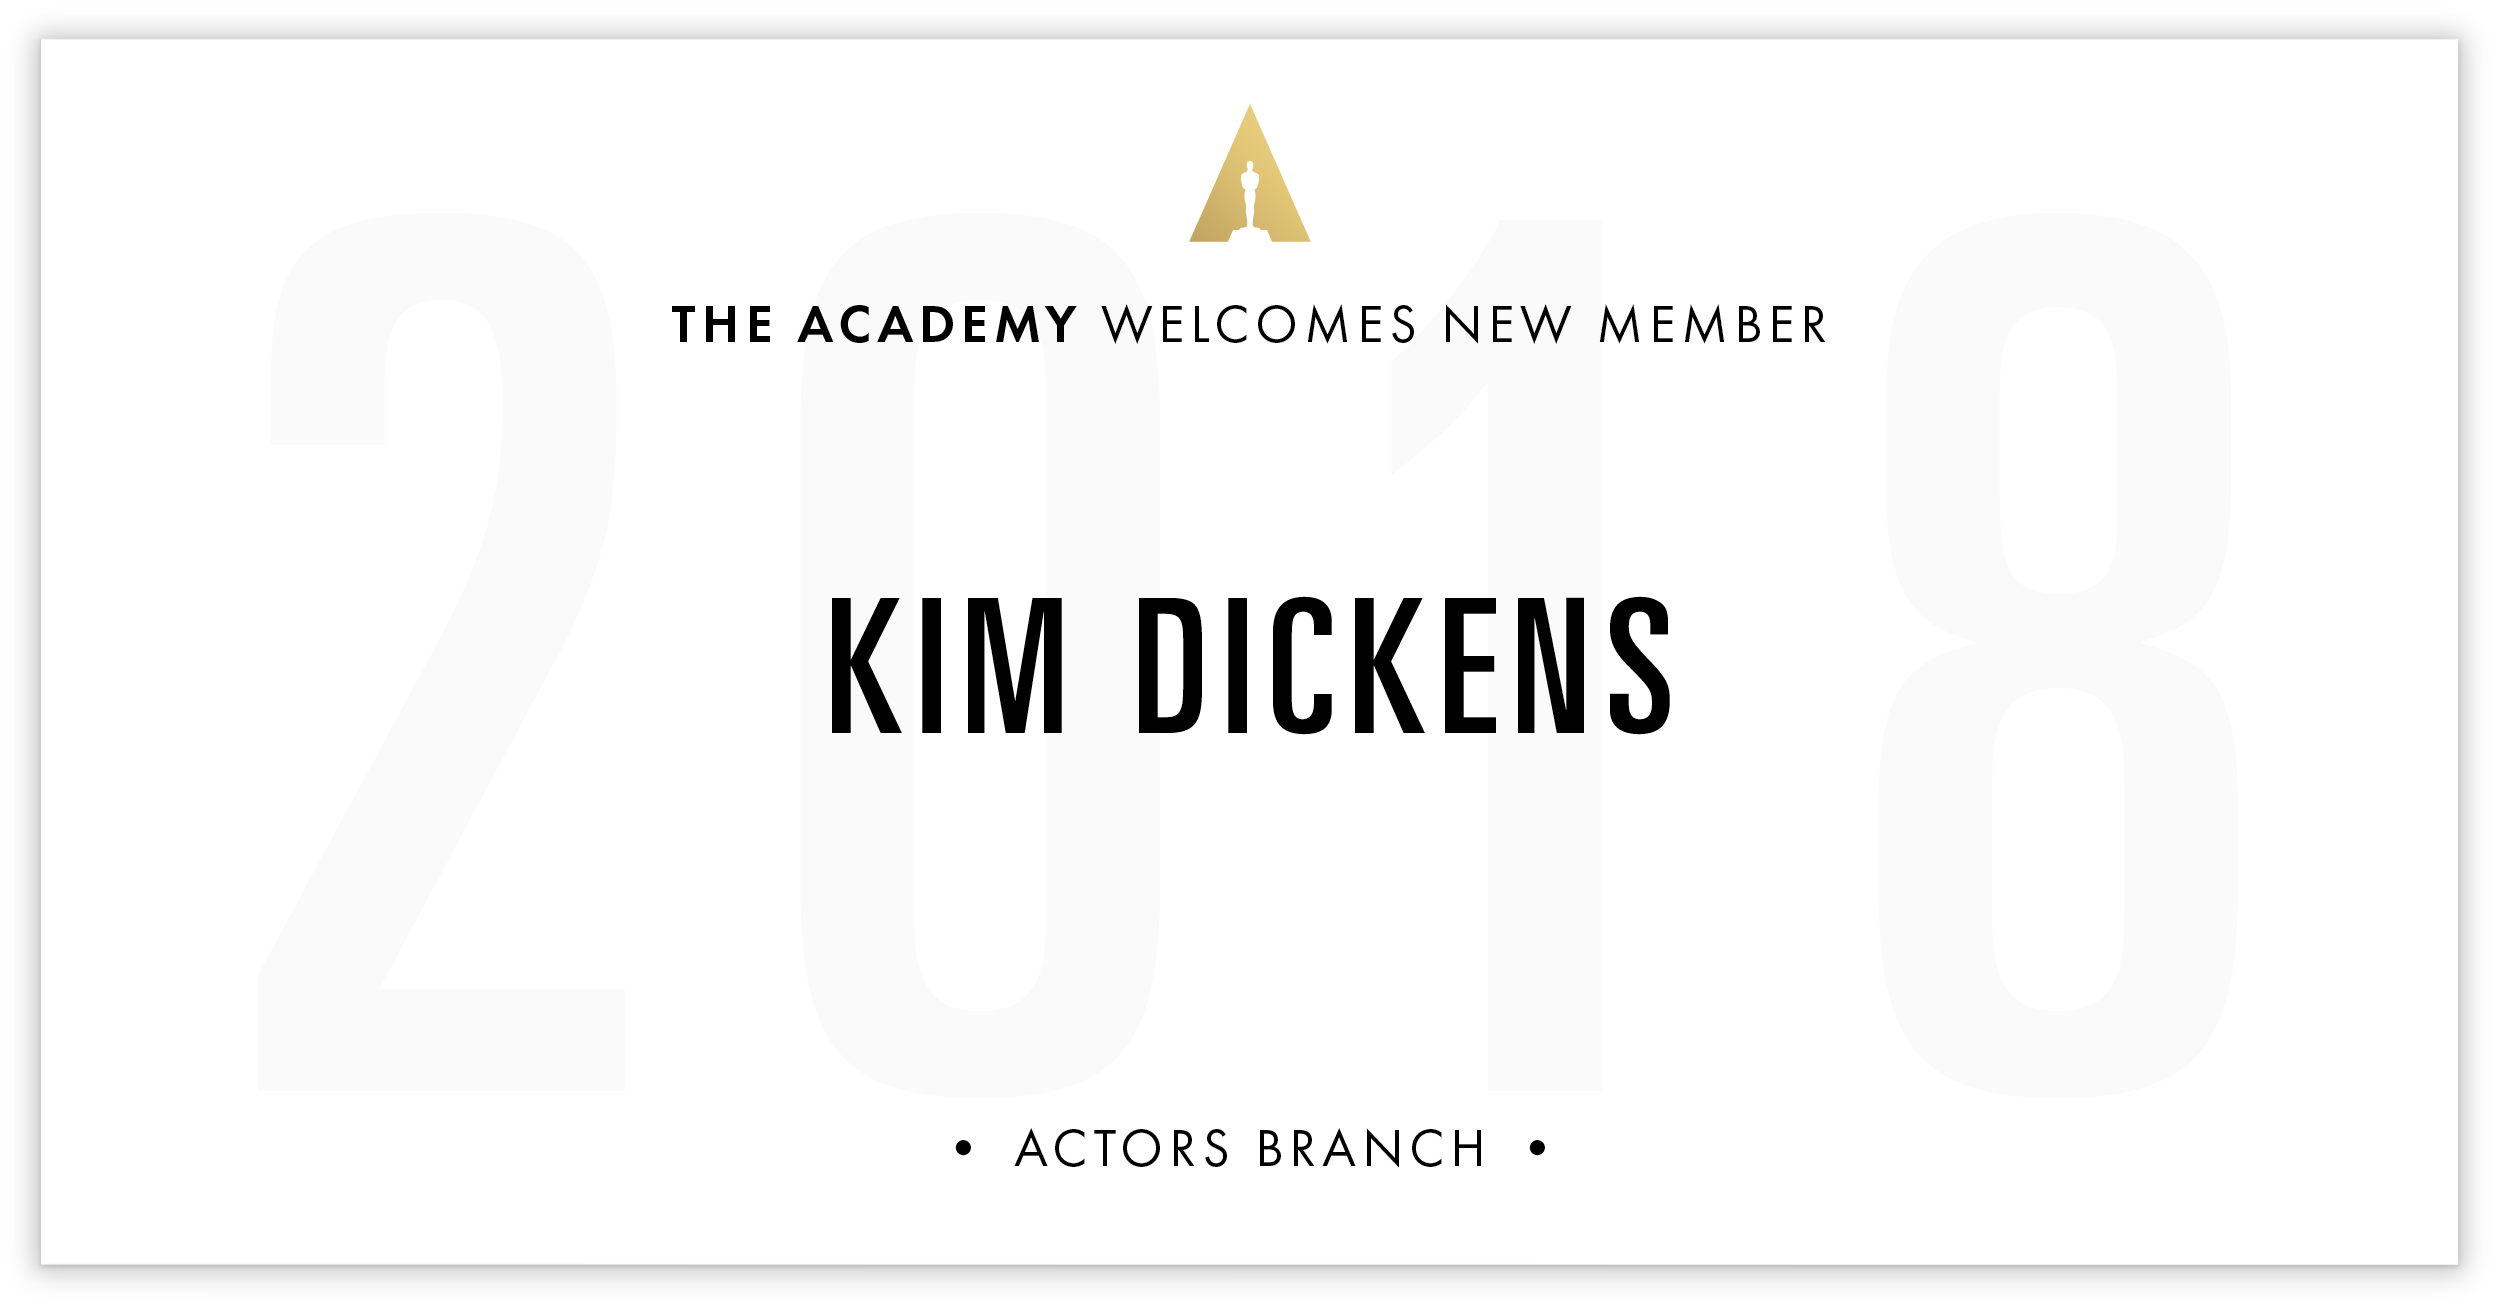 Kim Dickens is invited!